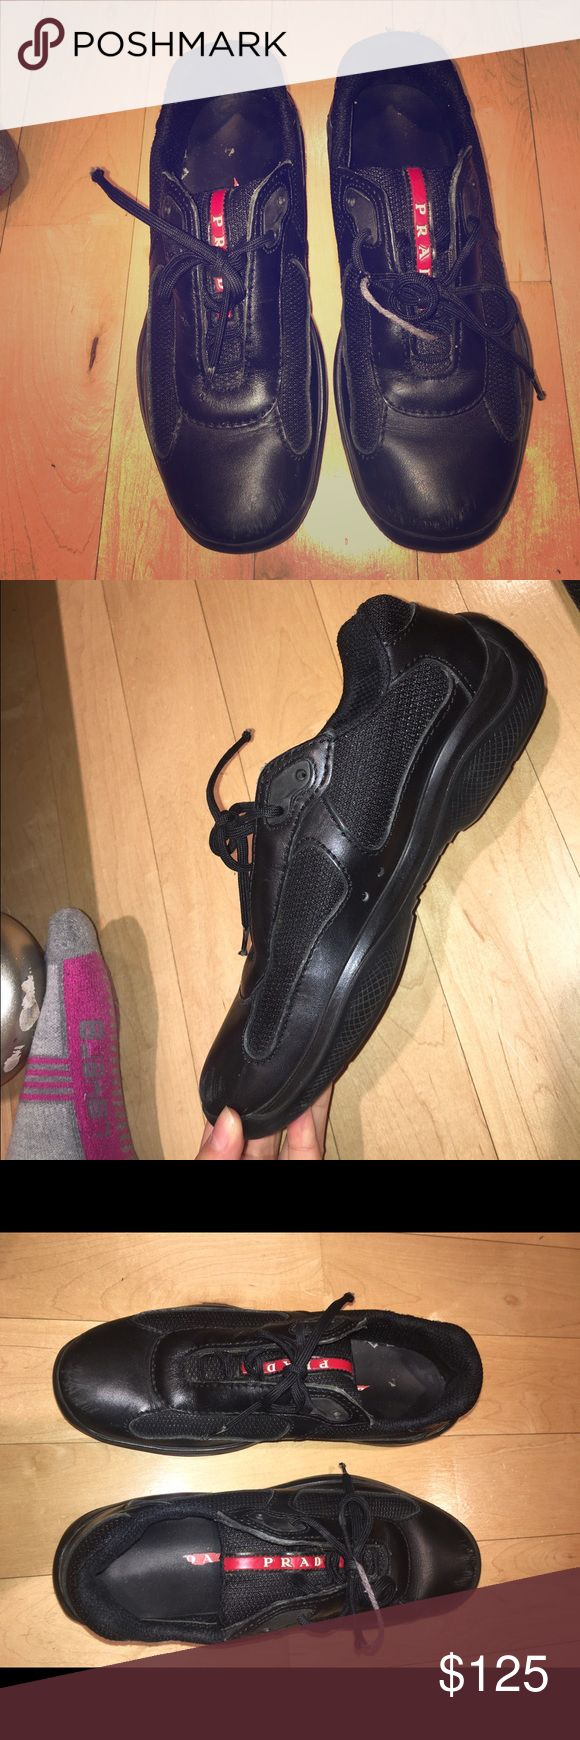 Authentic Women's American Cup Prada Sneakers Authentic Prada black sneakers, black tongue with red Prada logo in the middle. Good condition. Laces need to be replaced. Slight wear and tears Prada Shoes Sneakers